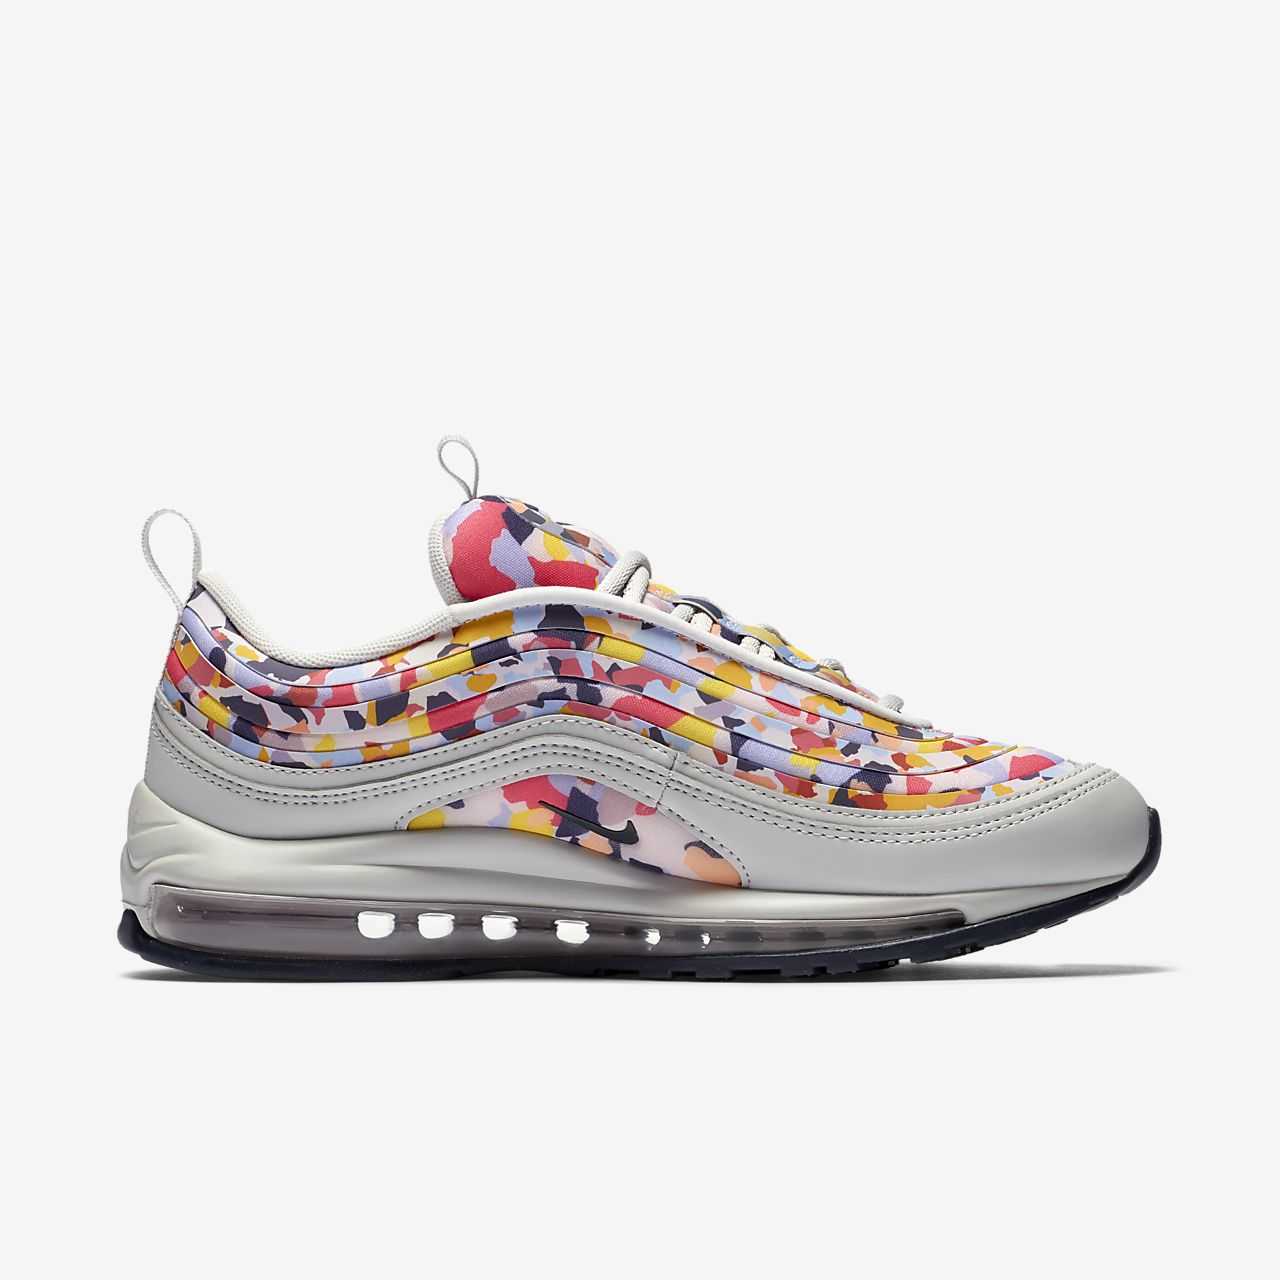 Nike Air Max 97 Summer Scales 921826 100